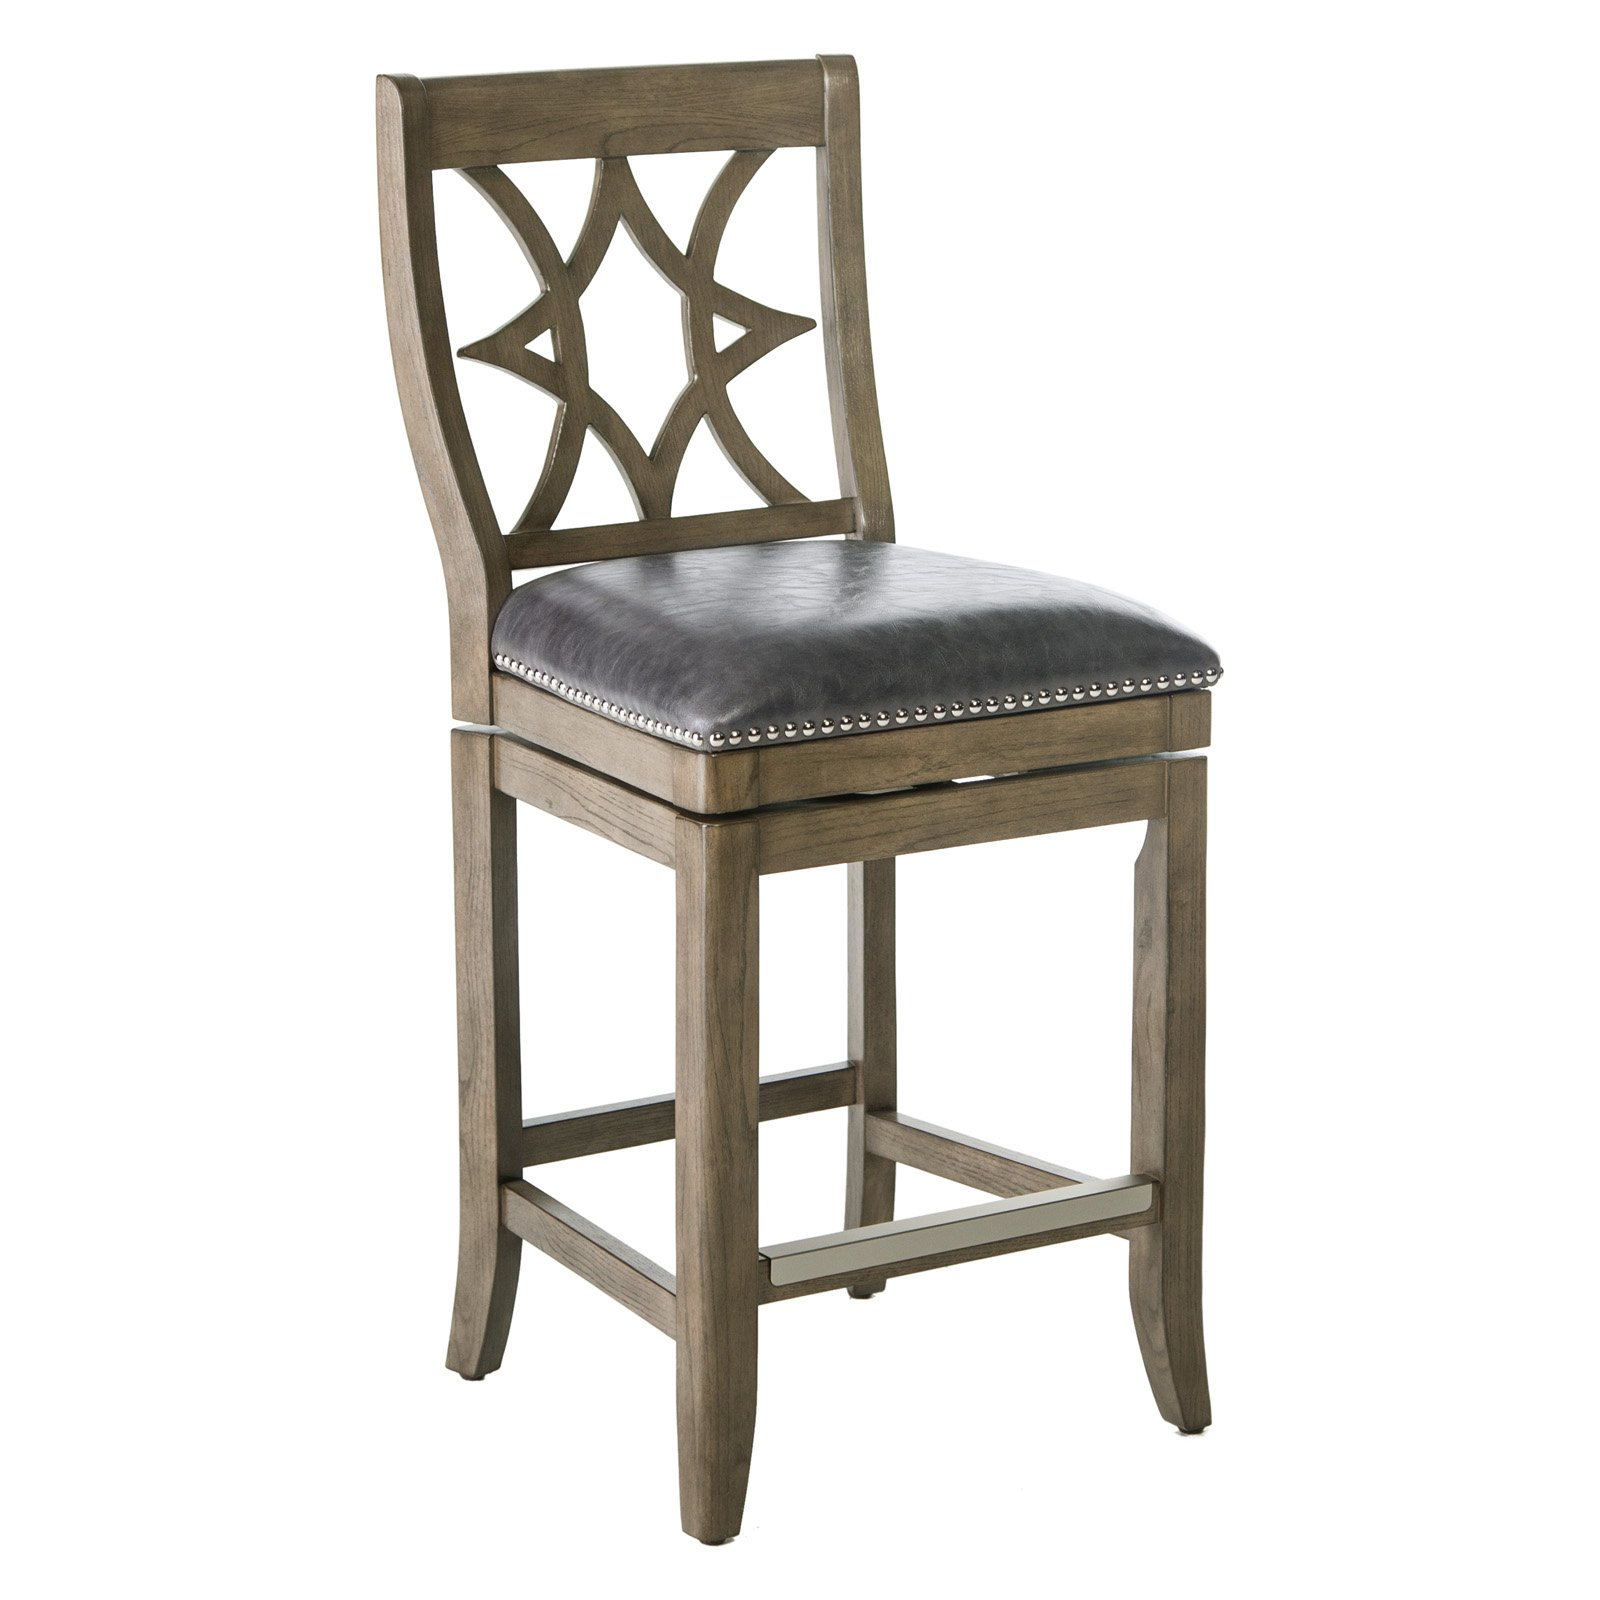 Belham Living Oliver Square Seat Swivel Counter Stool